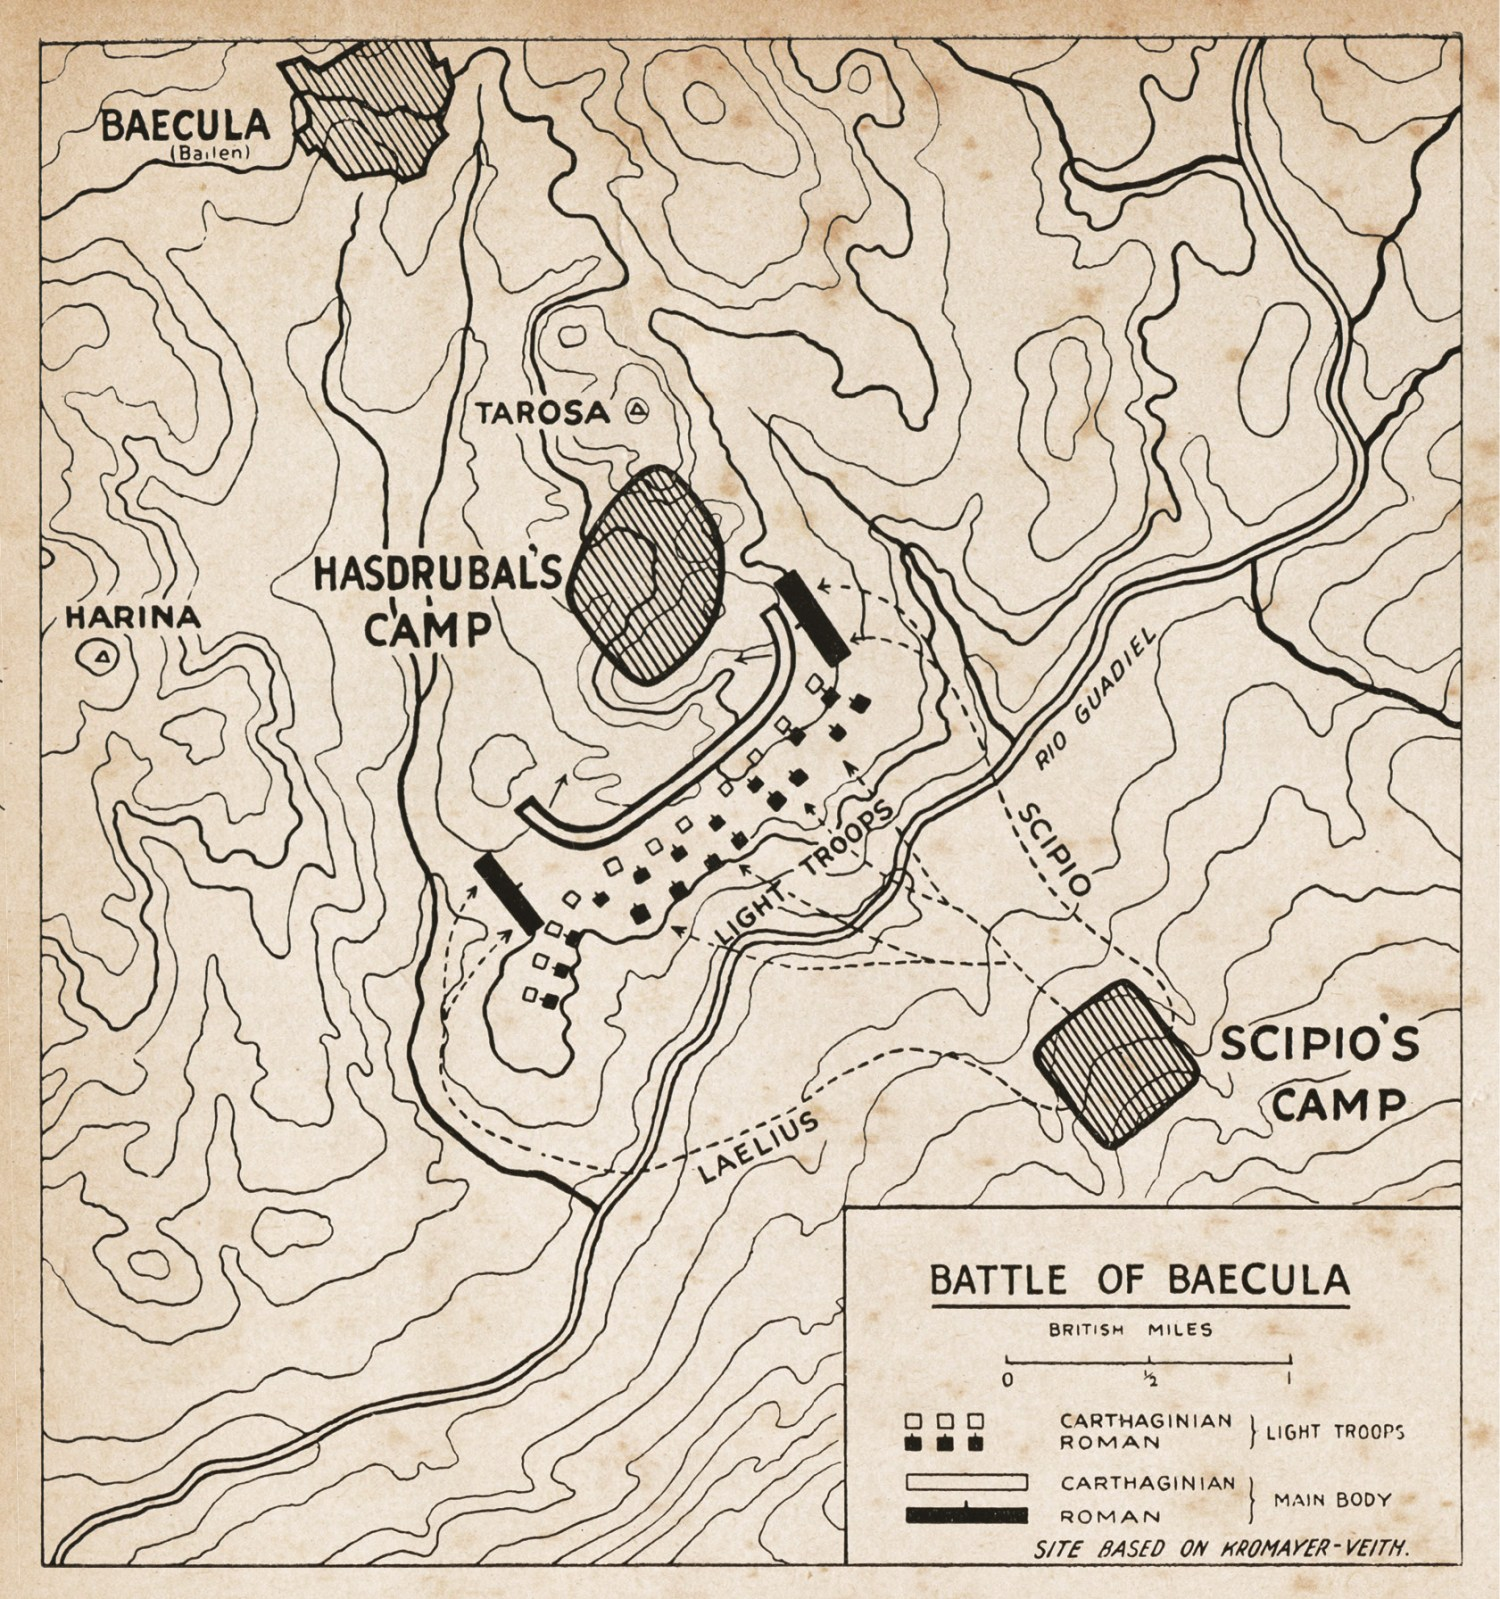 Opposite Plan of Scipio's assault on Nova Carthago (New Carthage) in 209 BC. left Plan of the Battle of Baecula, 208 BC.